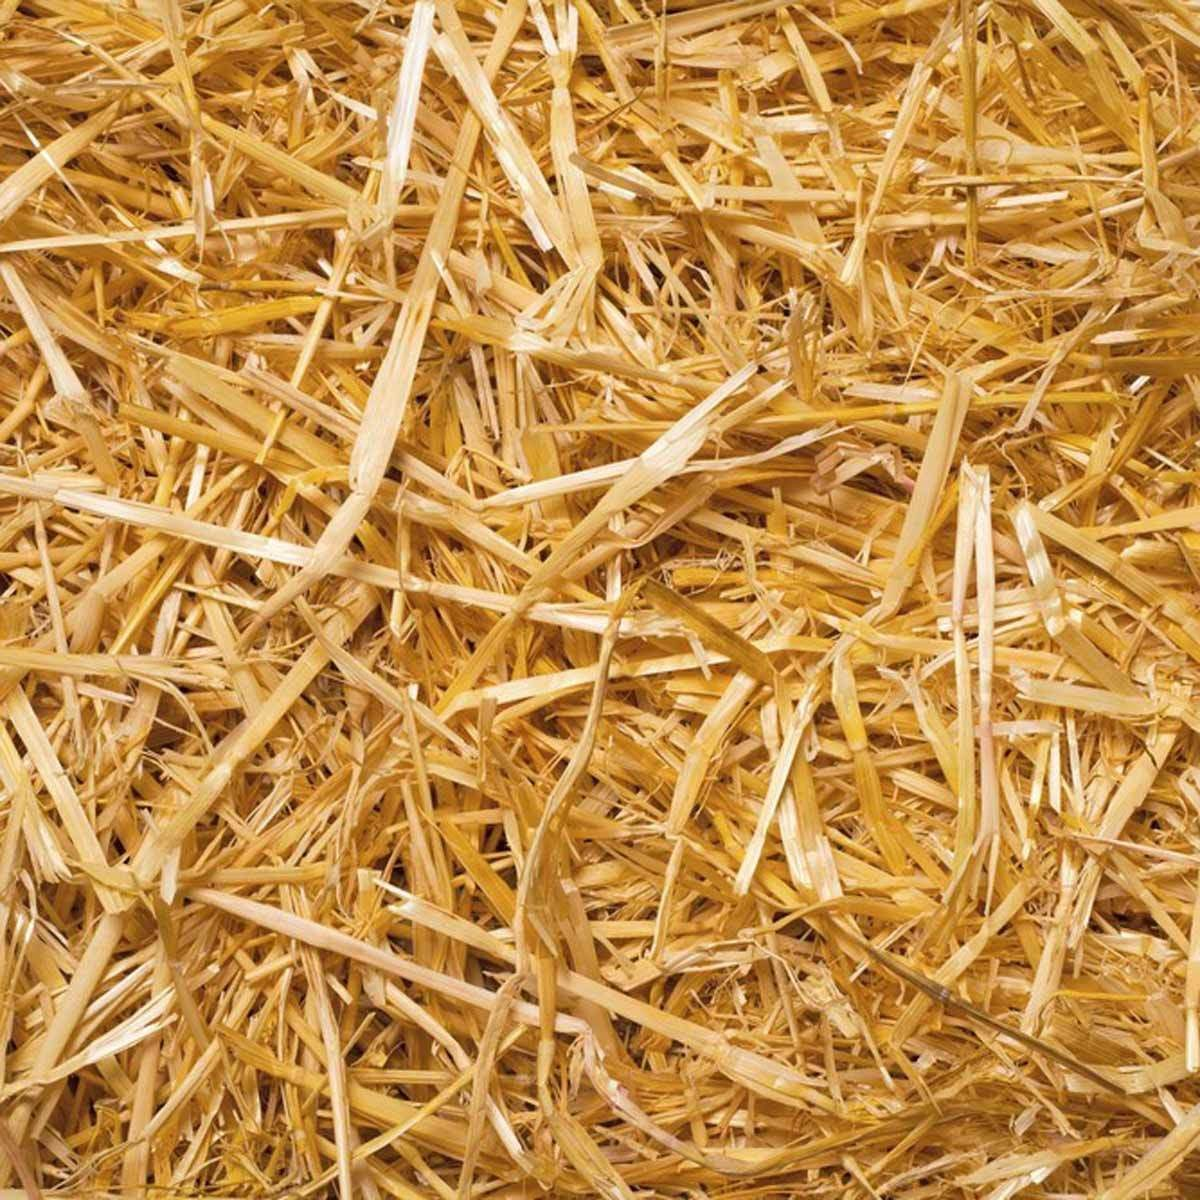 dfh17sep038_127725506_08-1200x1200 insulate straw hay